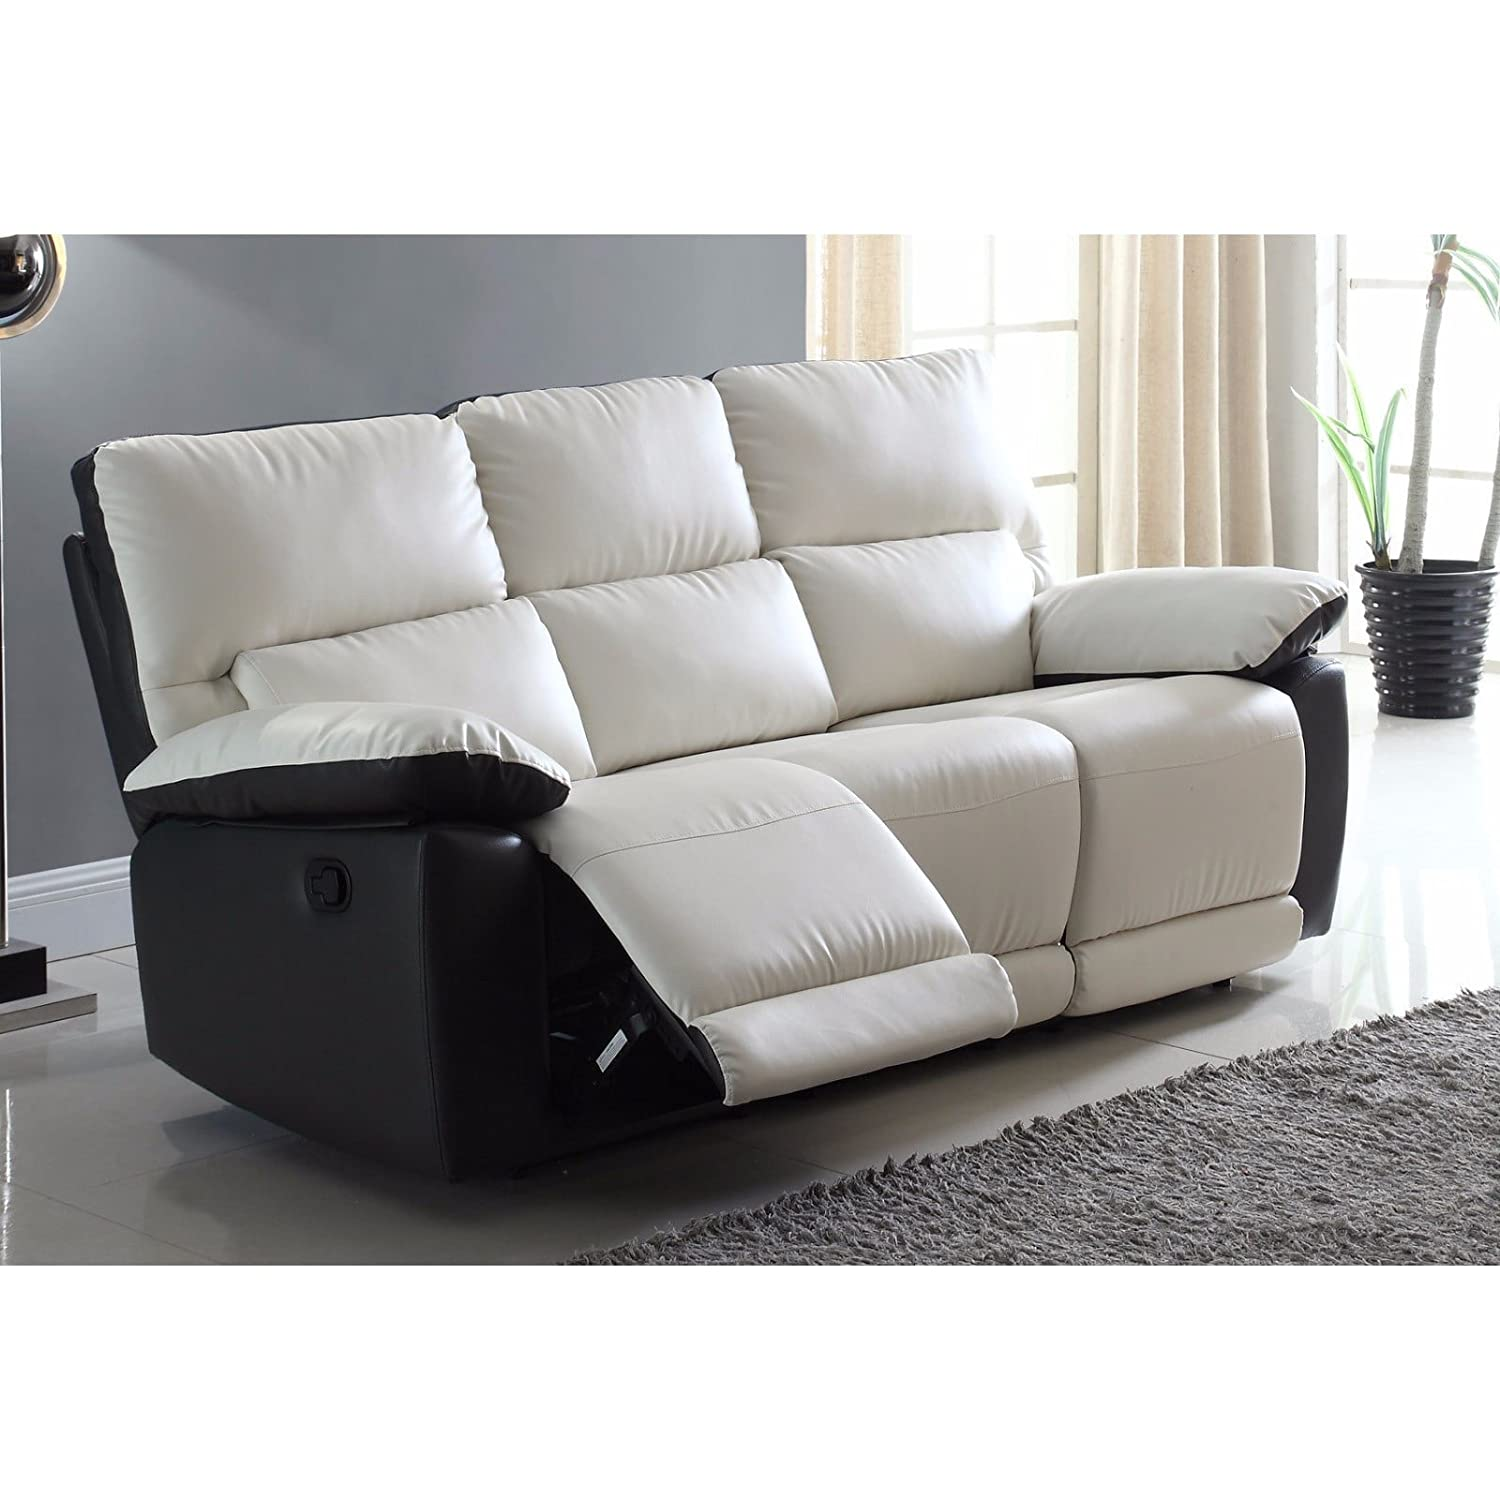 Amazon.com: Modern Two Tone Bonded Leather Oversize Recliner Living ...